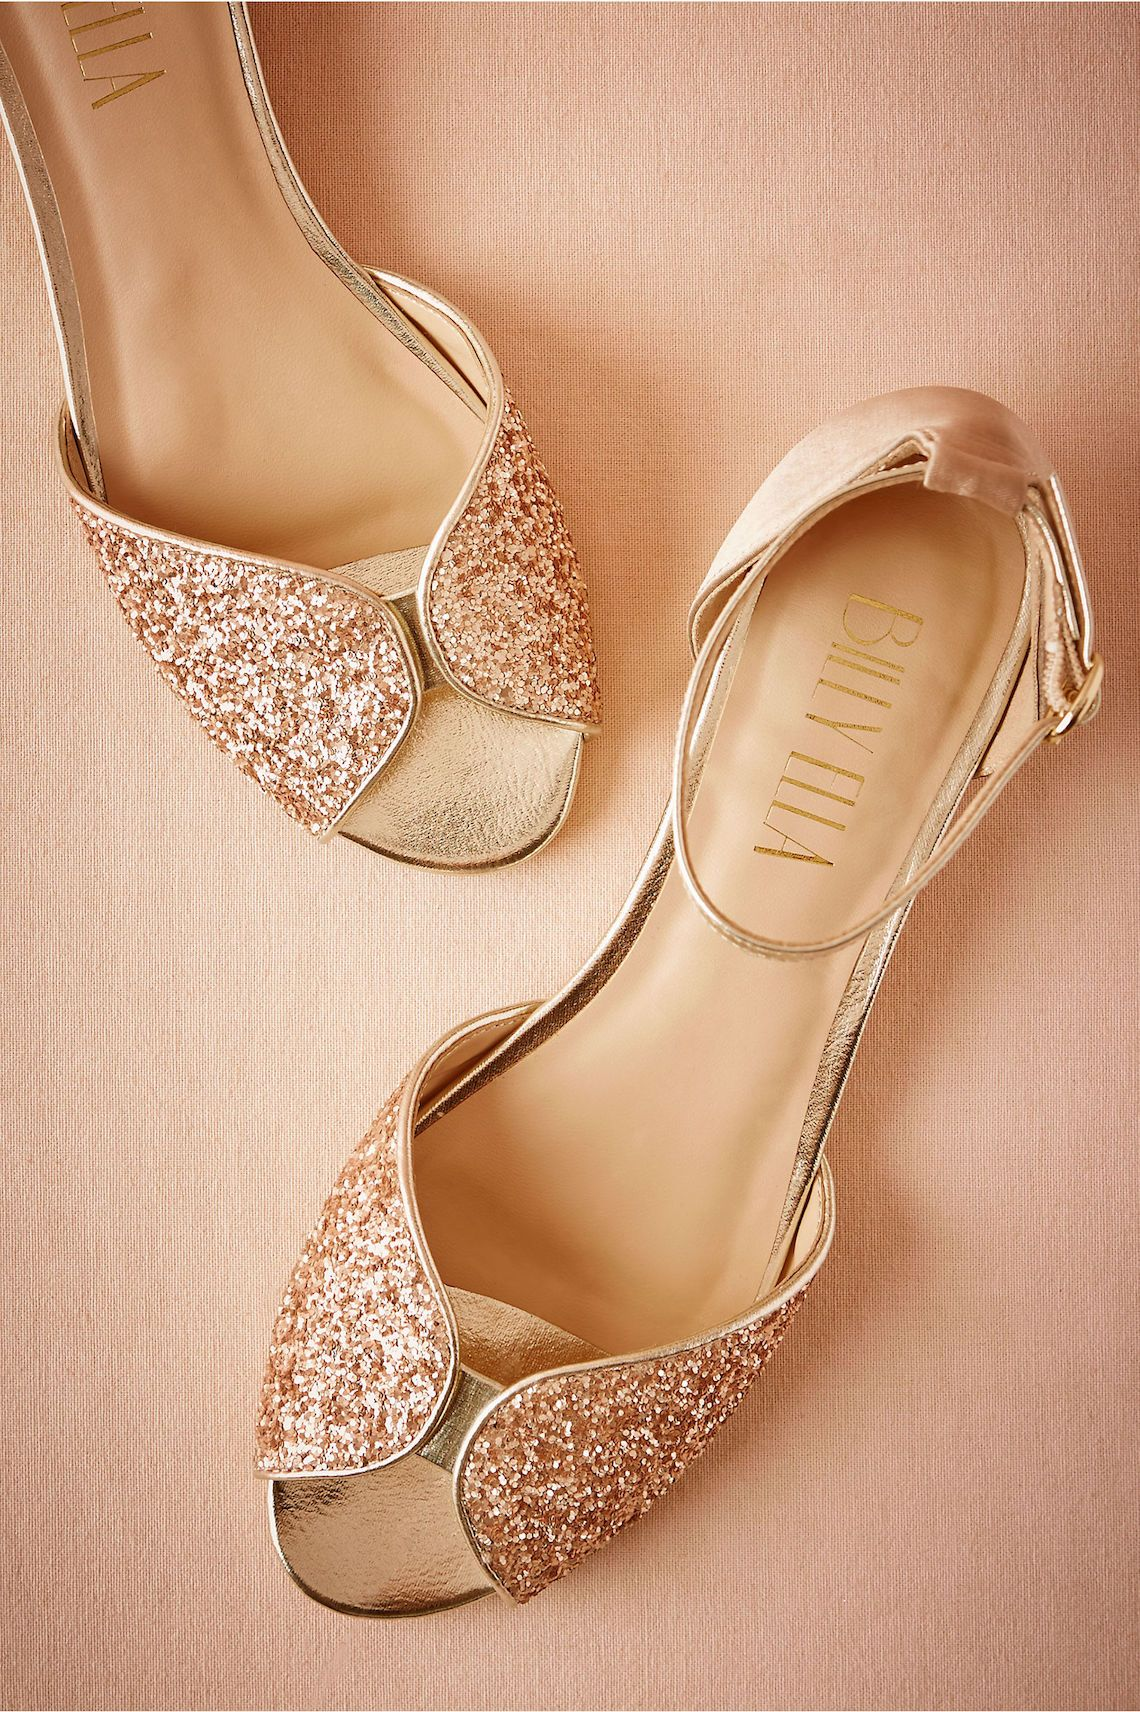 1dccfdd33 10 Flat Wedding Shoes (That Are Just As Chic As Heels)